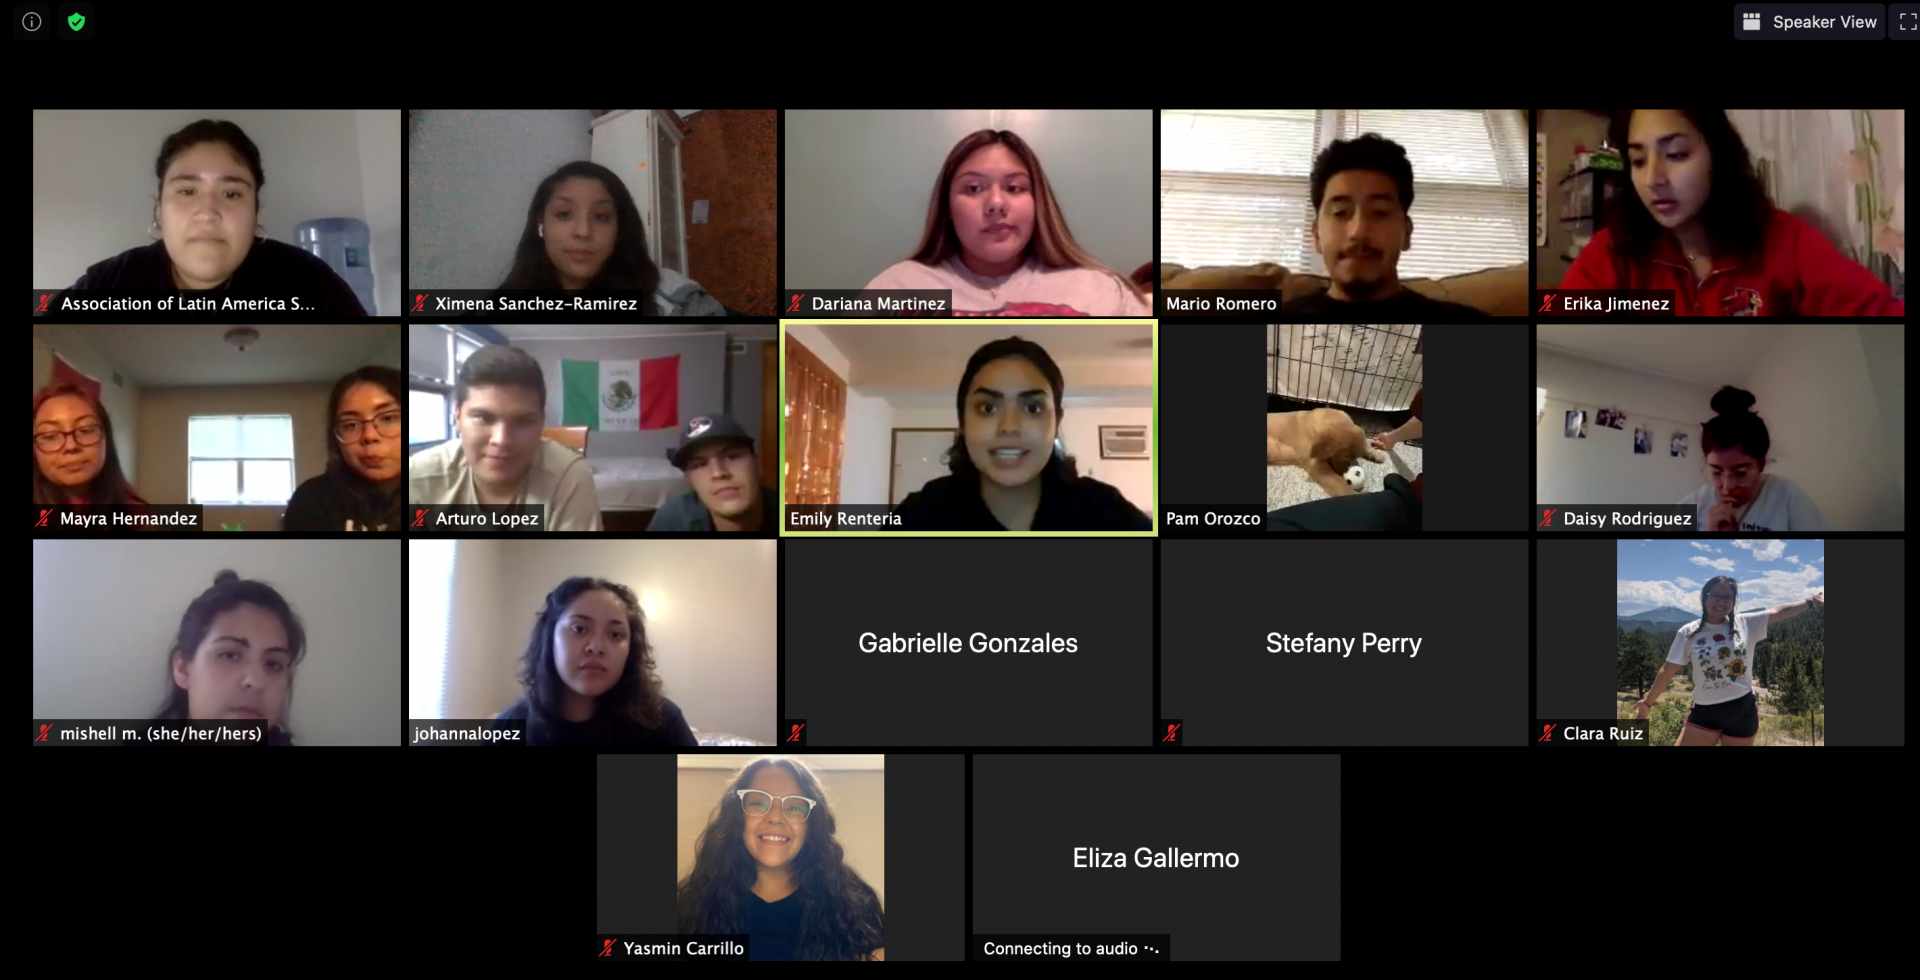 Association of Latinx American Students (ALAS) members during a Zoom event.